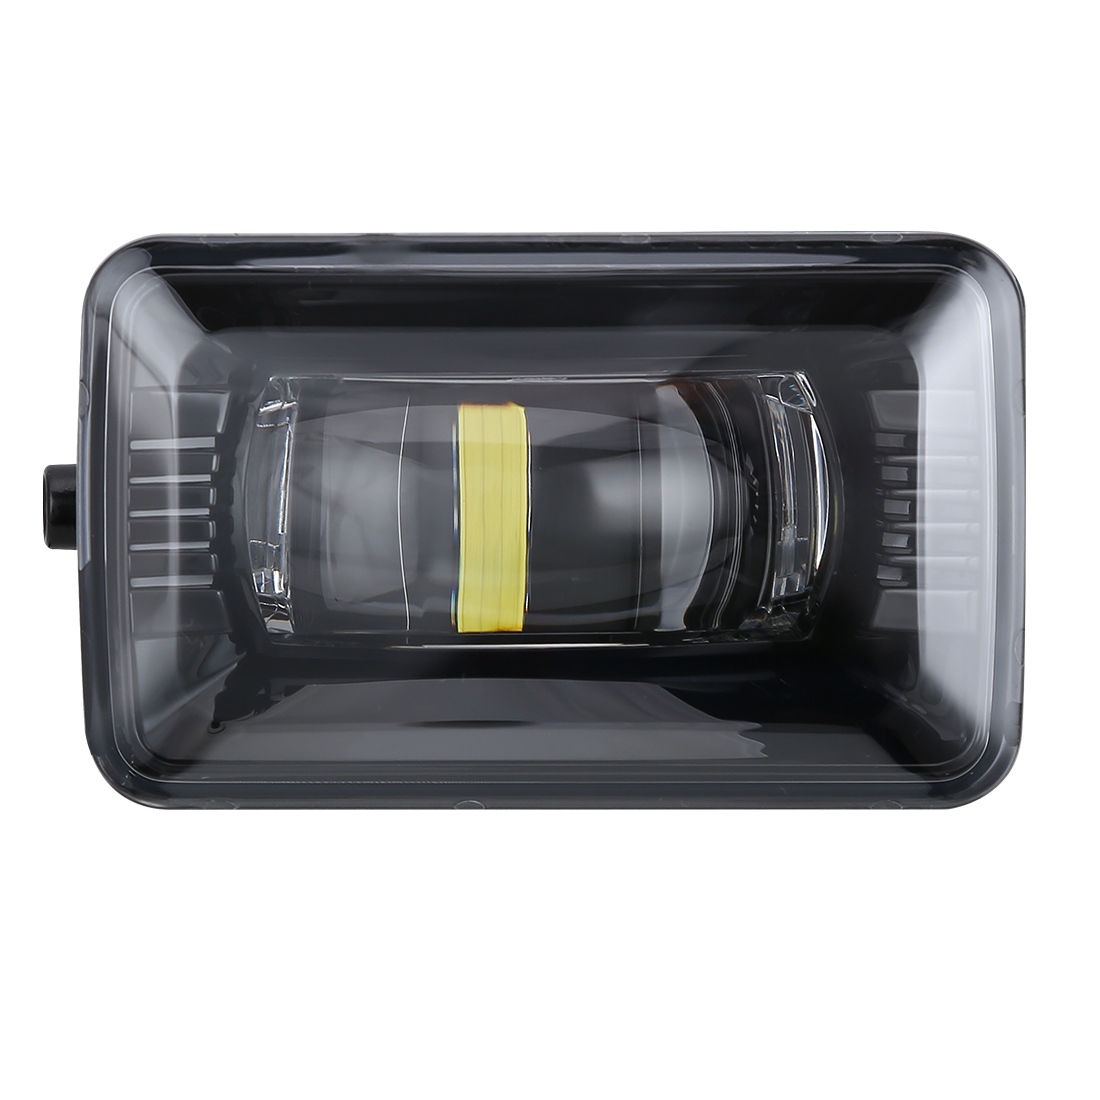 F-150 Auto Parts LED Fog Accessory Light for Ford F150 2015 2016 2017 2018 Car Light Assembly Fog Lights